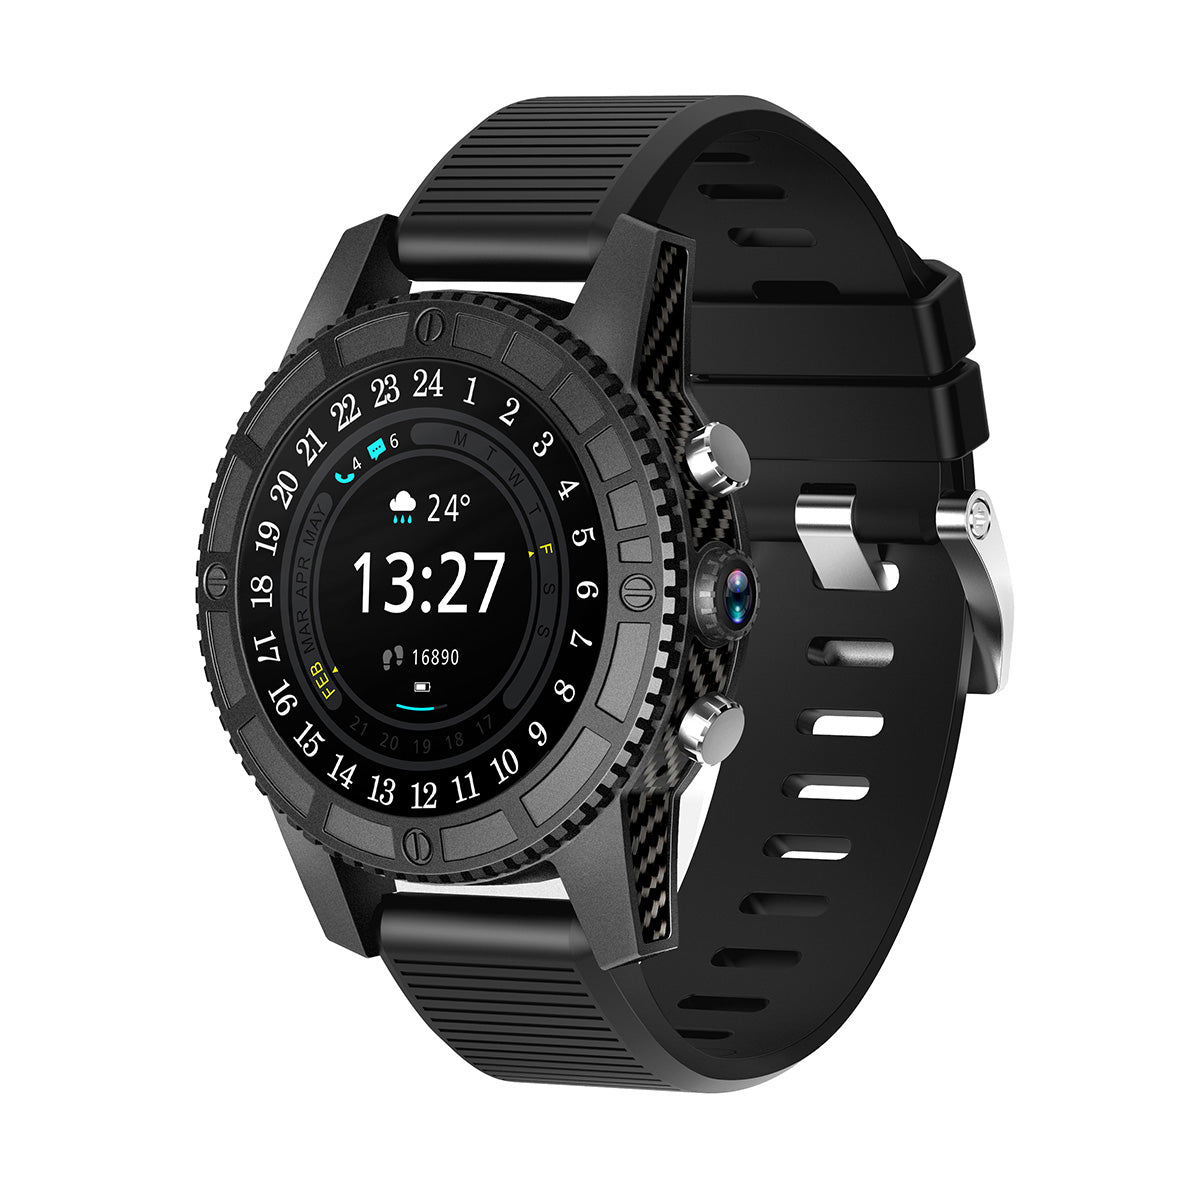 4G Wifi Smart Carbon Fiber Watch - Serious Carbon